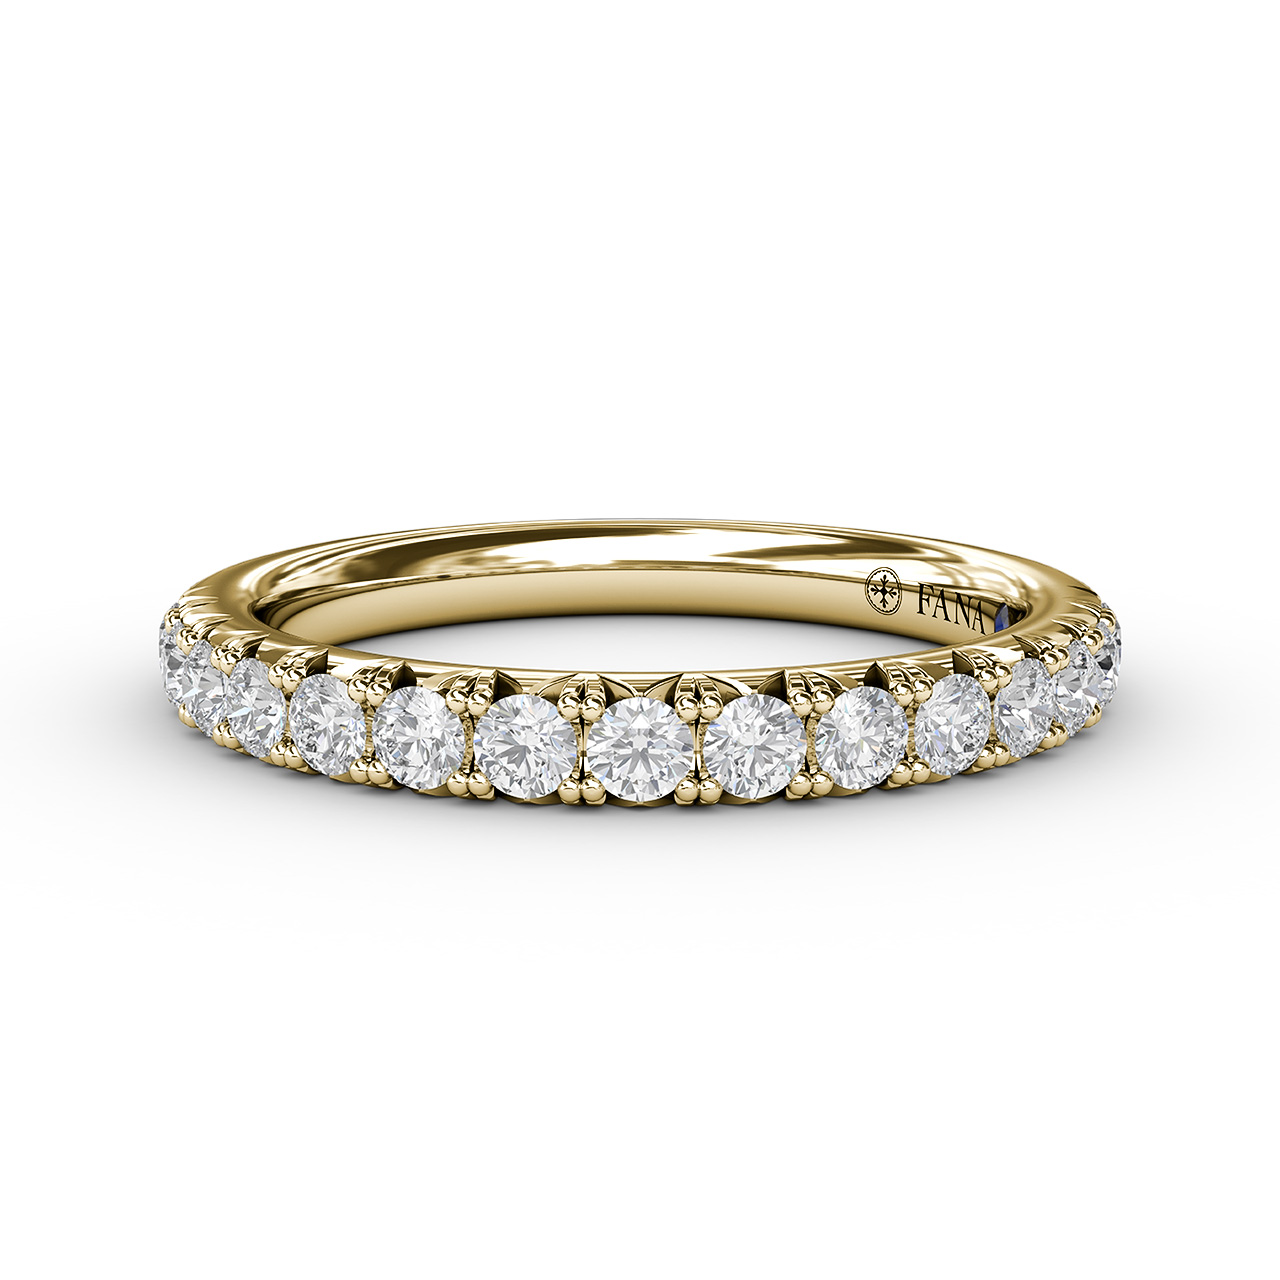 Anniversary Bands - 1/2ct French Pave Set Anniversary Band